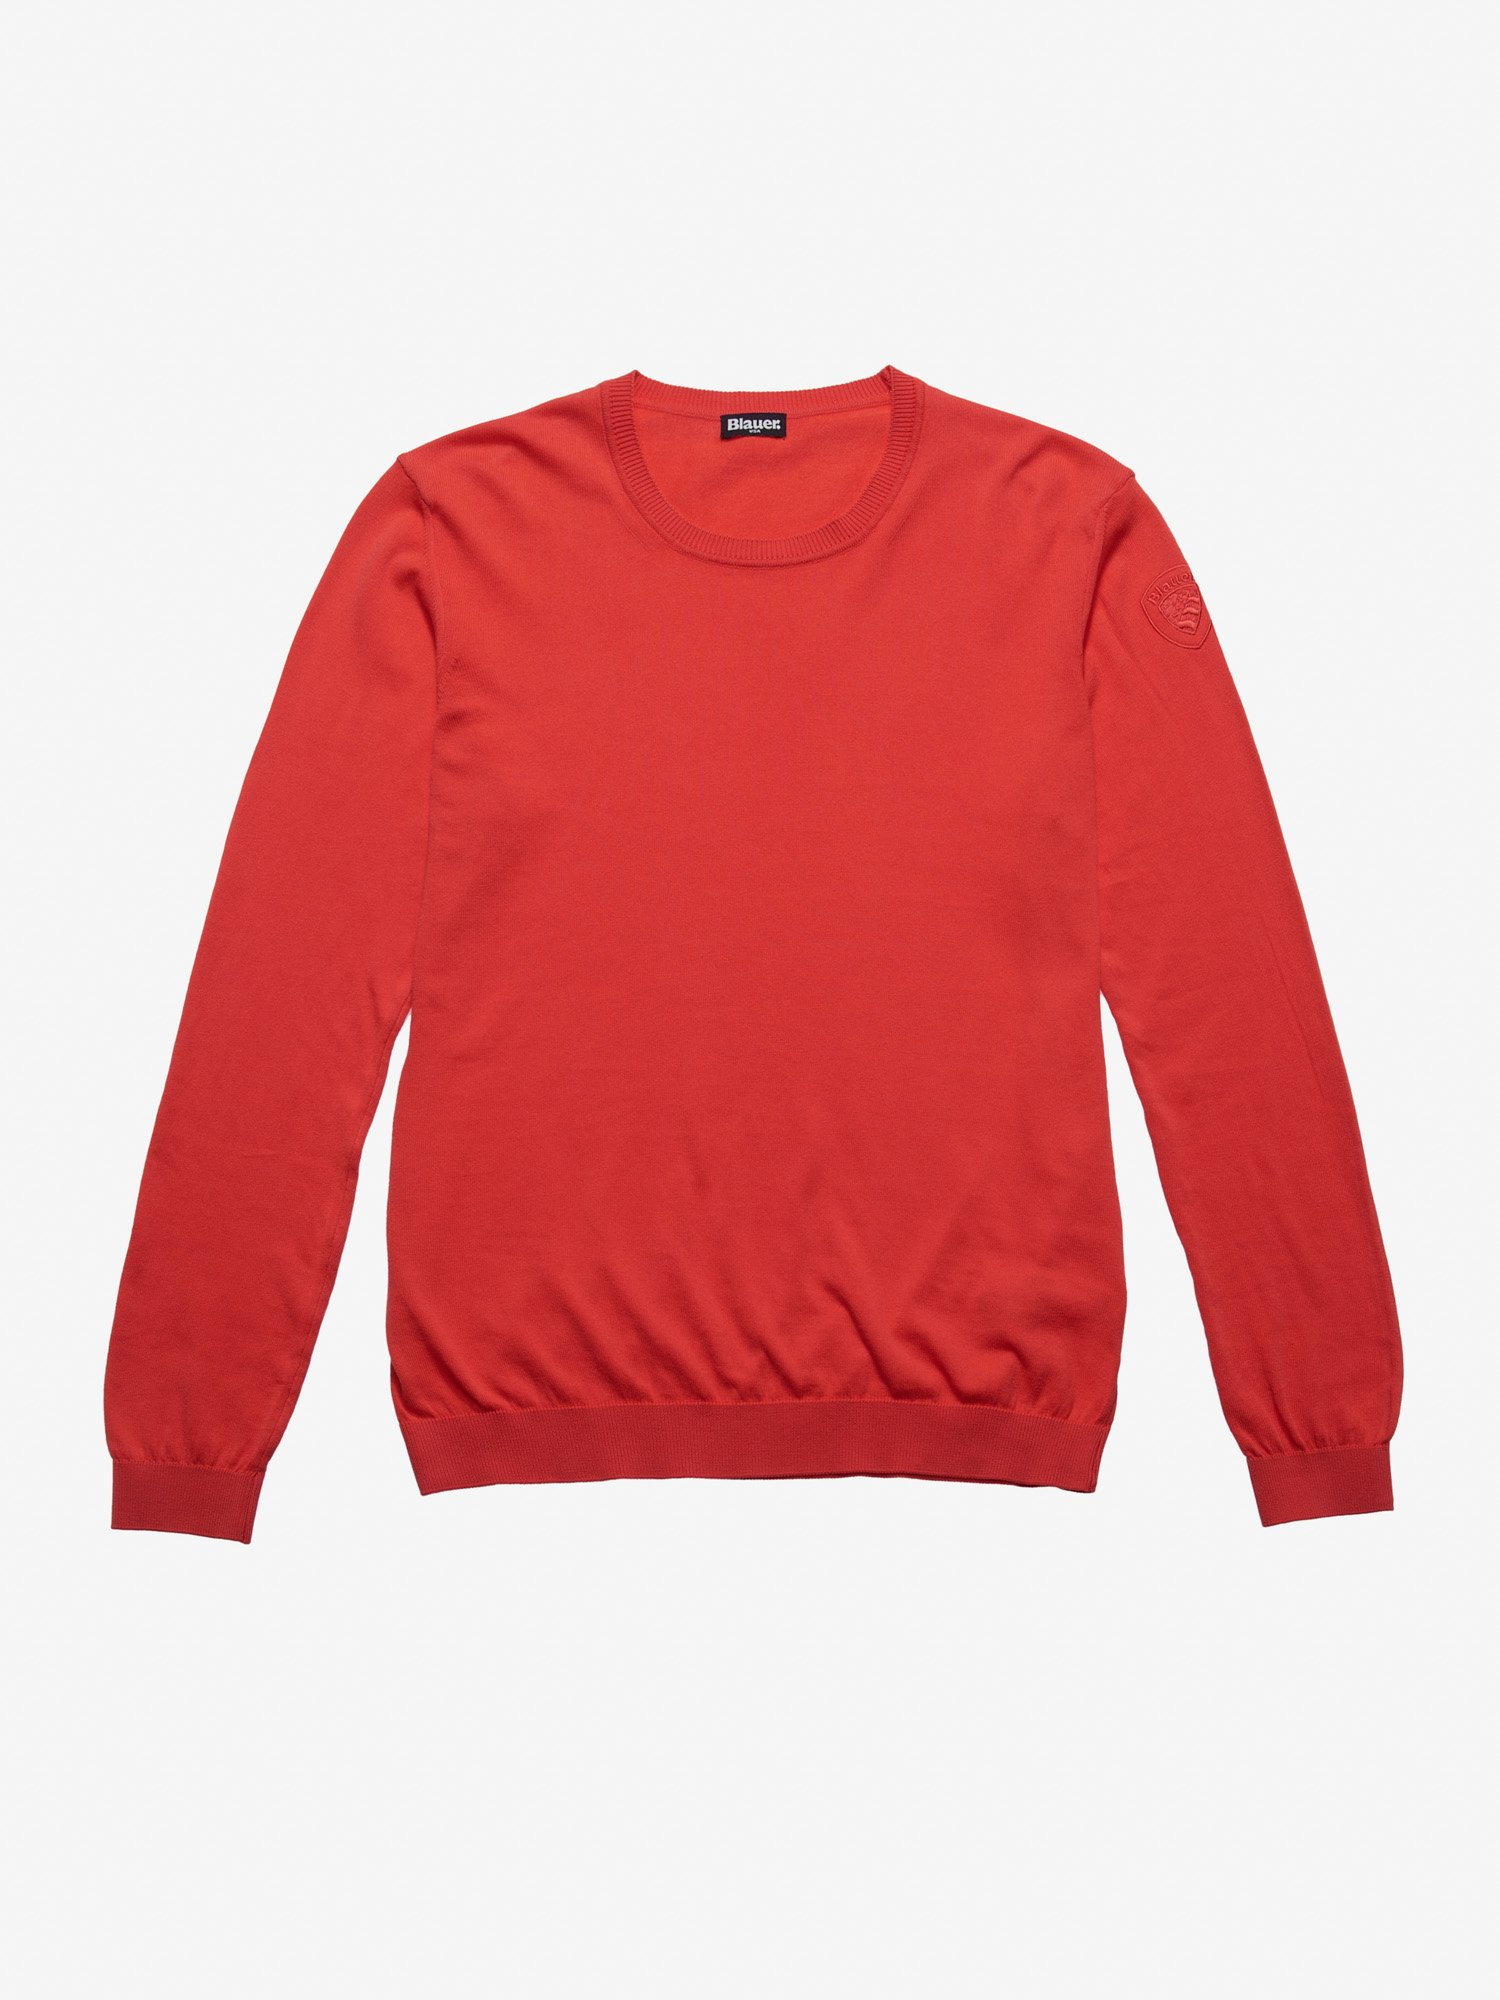 Blauer - BLAUER CREW NECK SWEATER - Red Ginger - Blauer